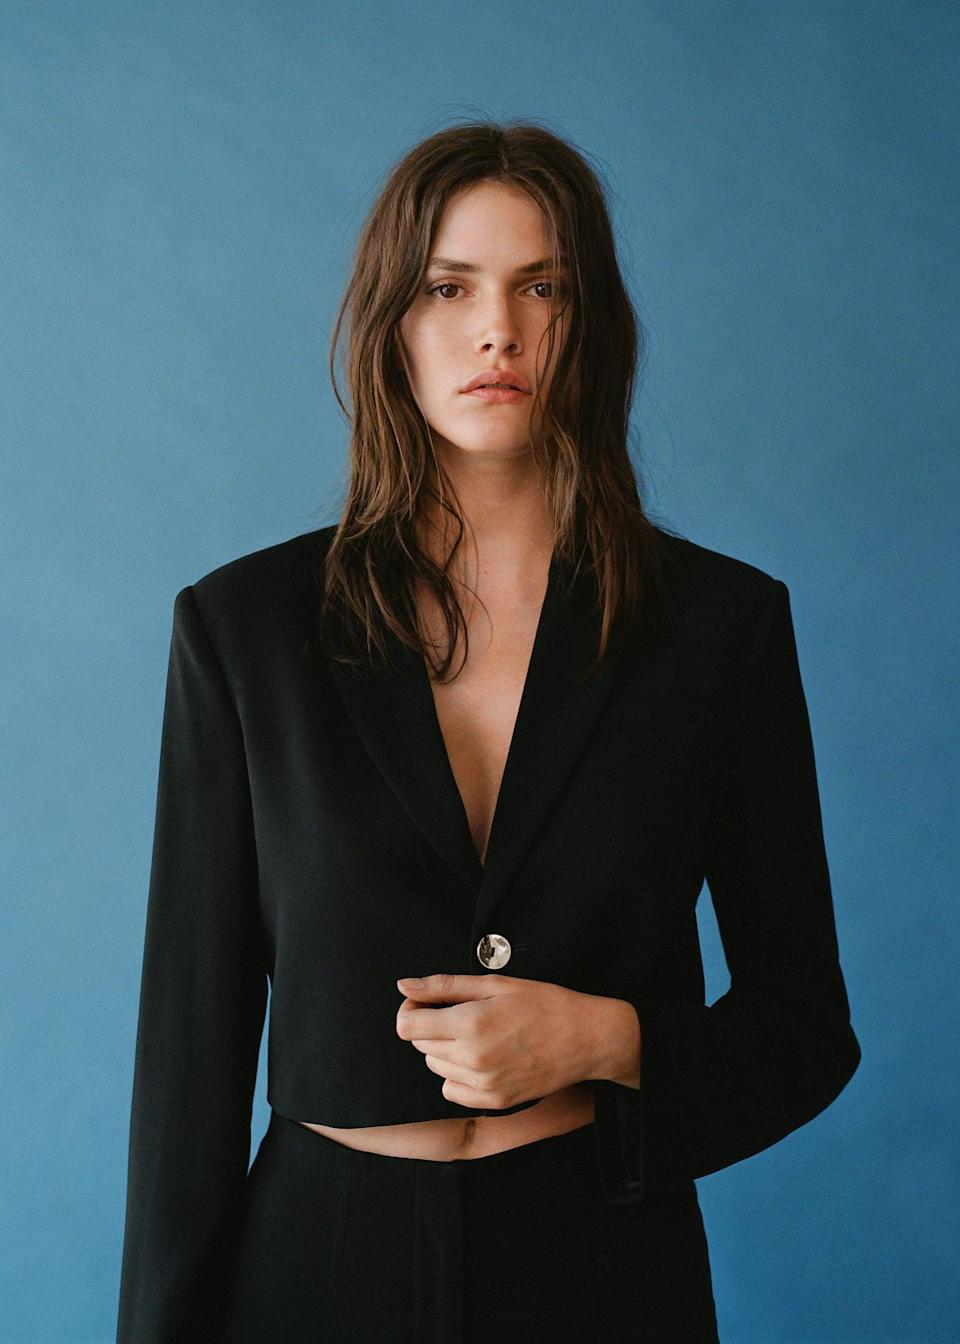 <p>Take your office uniform to the next level with this <span>Cropped Blazer</span> ($100), which has a modern silhouette and a put-together look. You'll feel in charge and ready to ask for that promotion.</p>